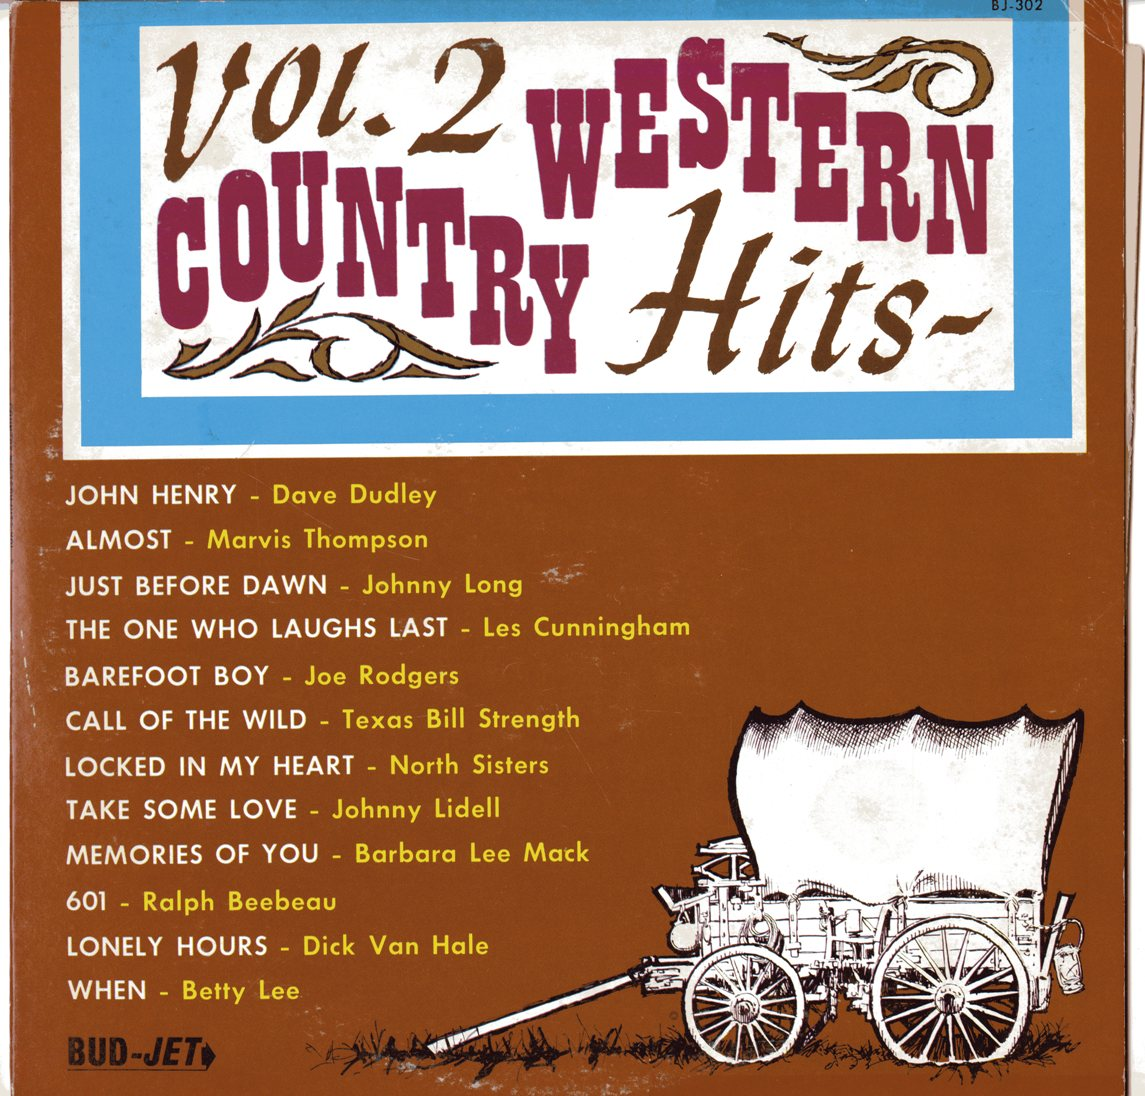 Some Local Loser: Bud-Jet Country Western Hits Vols. I, II ...